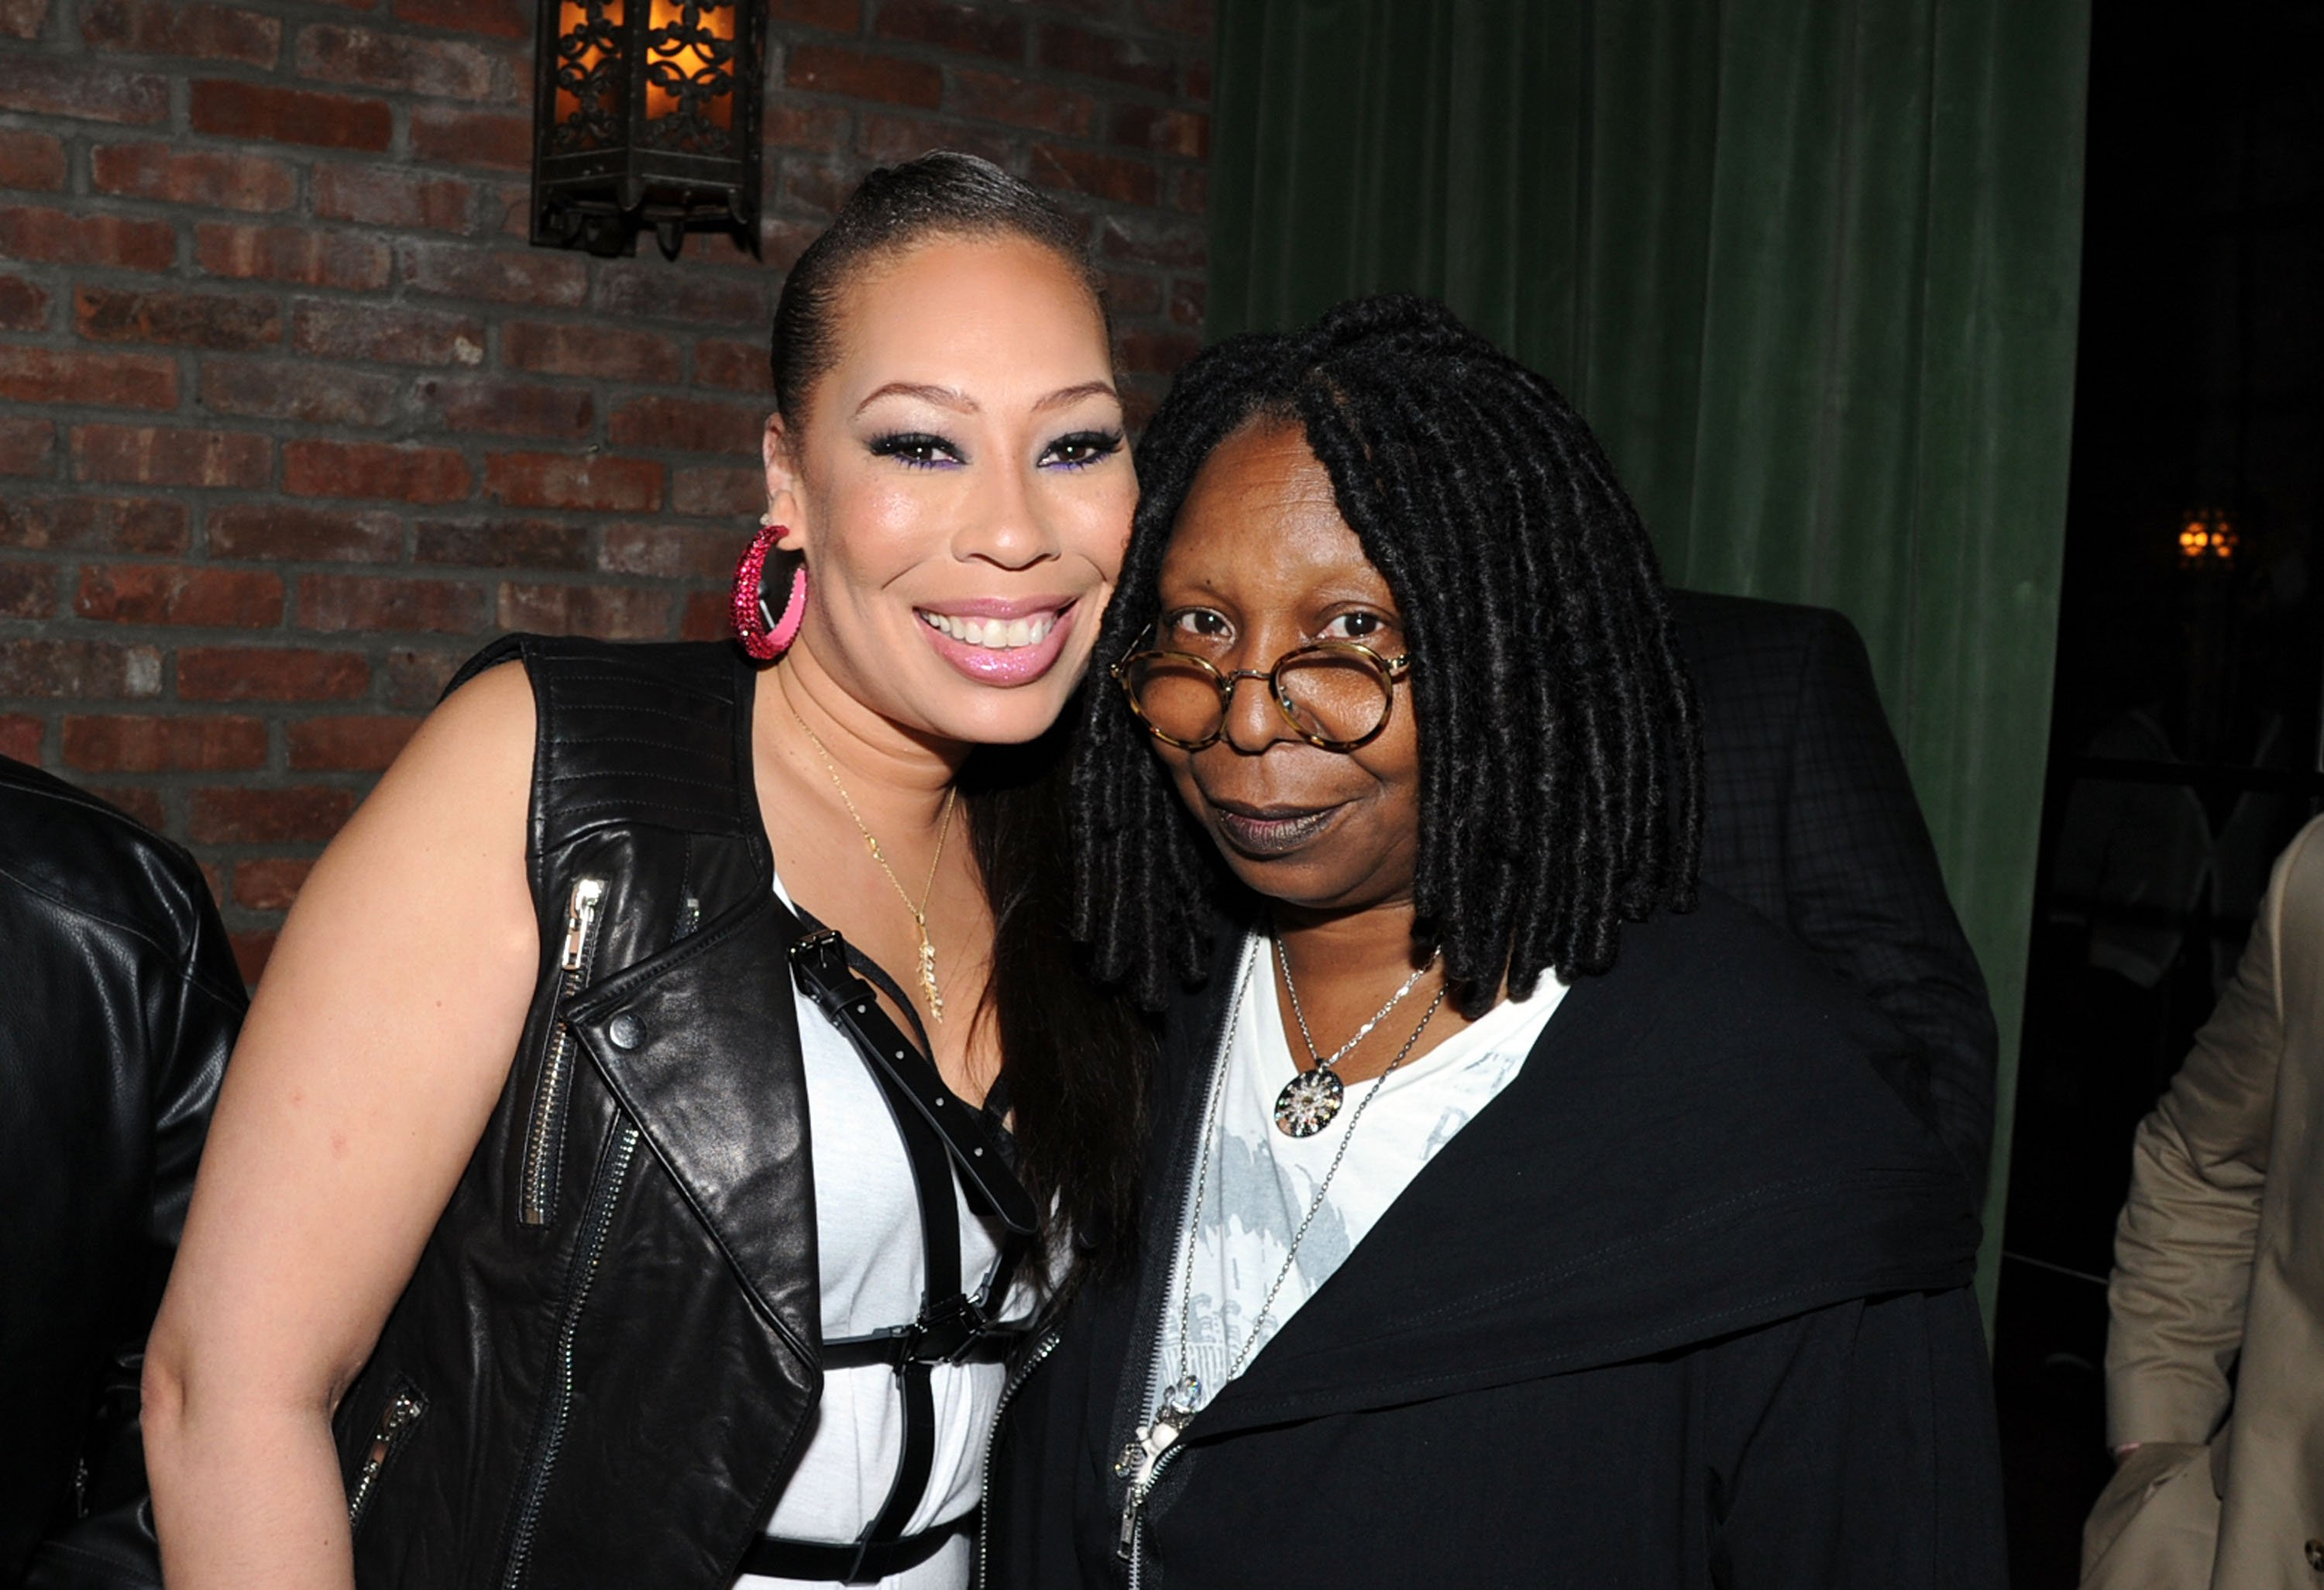 Alex Martin and her mother, Whoopi Goldberg at the forner's 40th birthday celebration in May 2014. | Photo: Getty Images